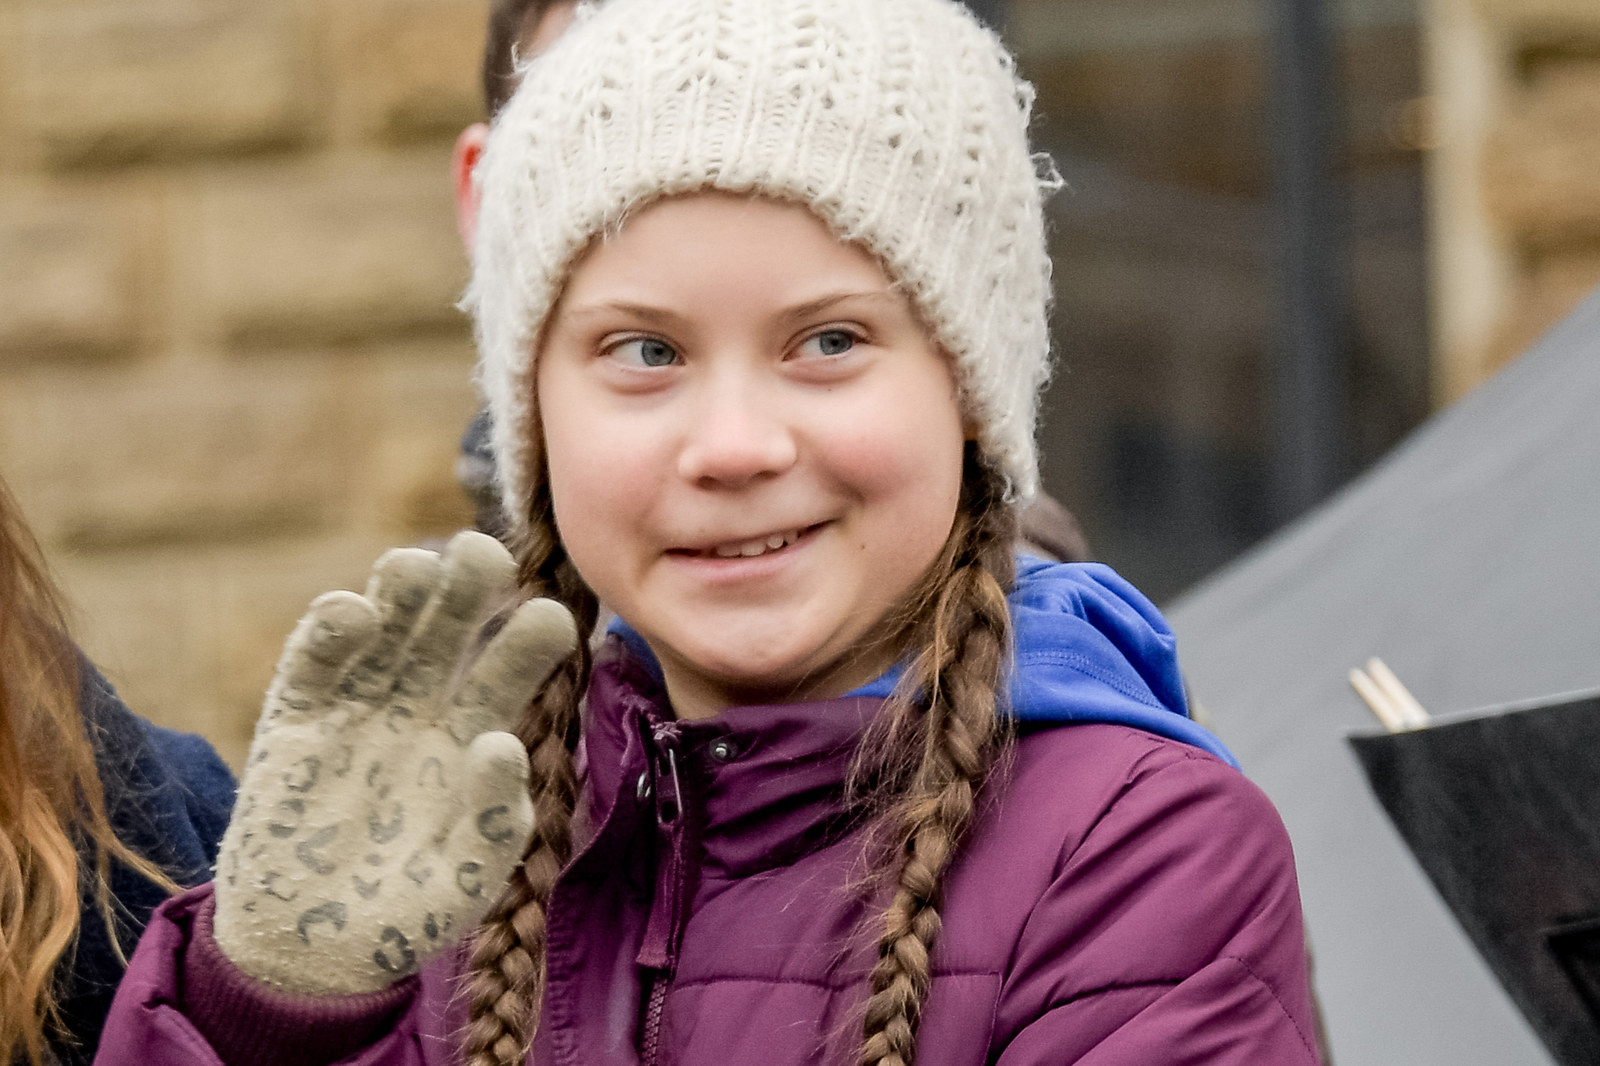 Swedish climate activist Greta Thunberg waves on stage during a demonstration of students in Hambourg, Germany.